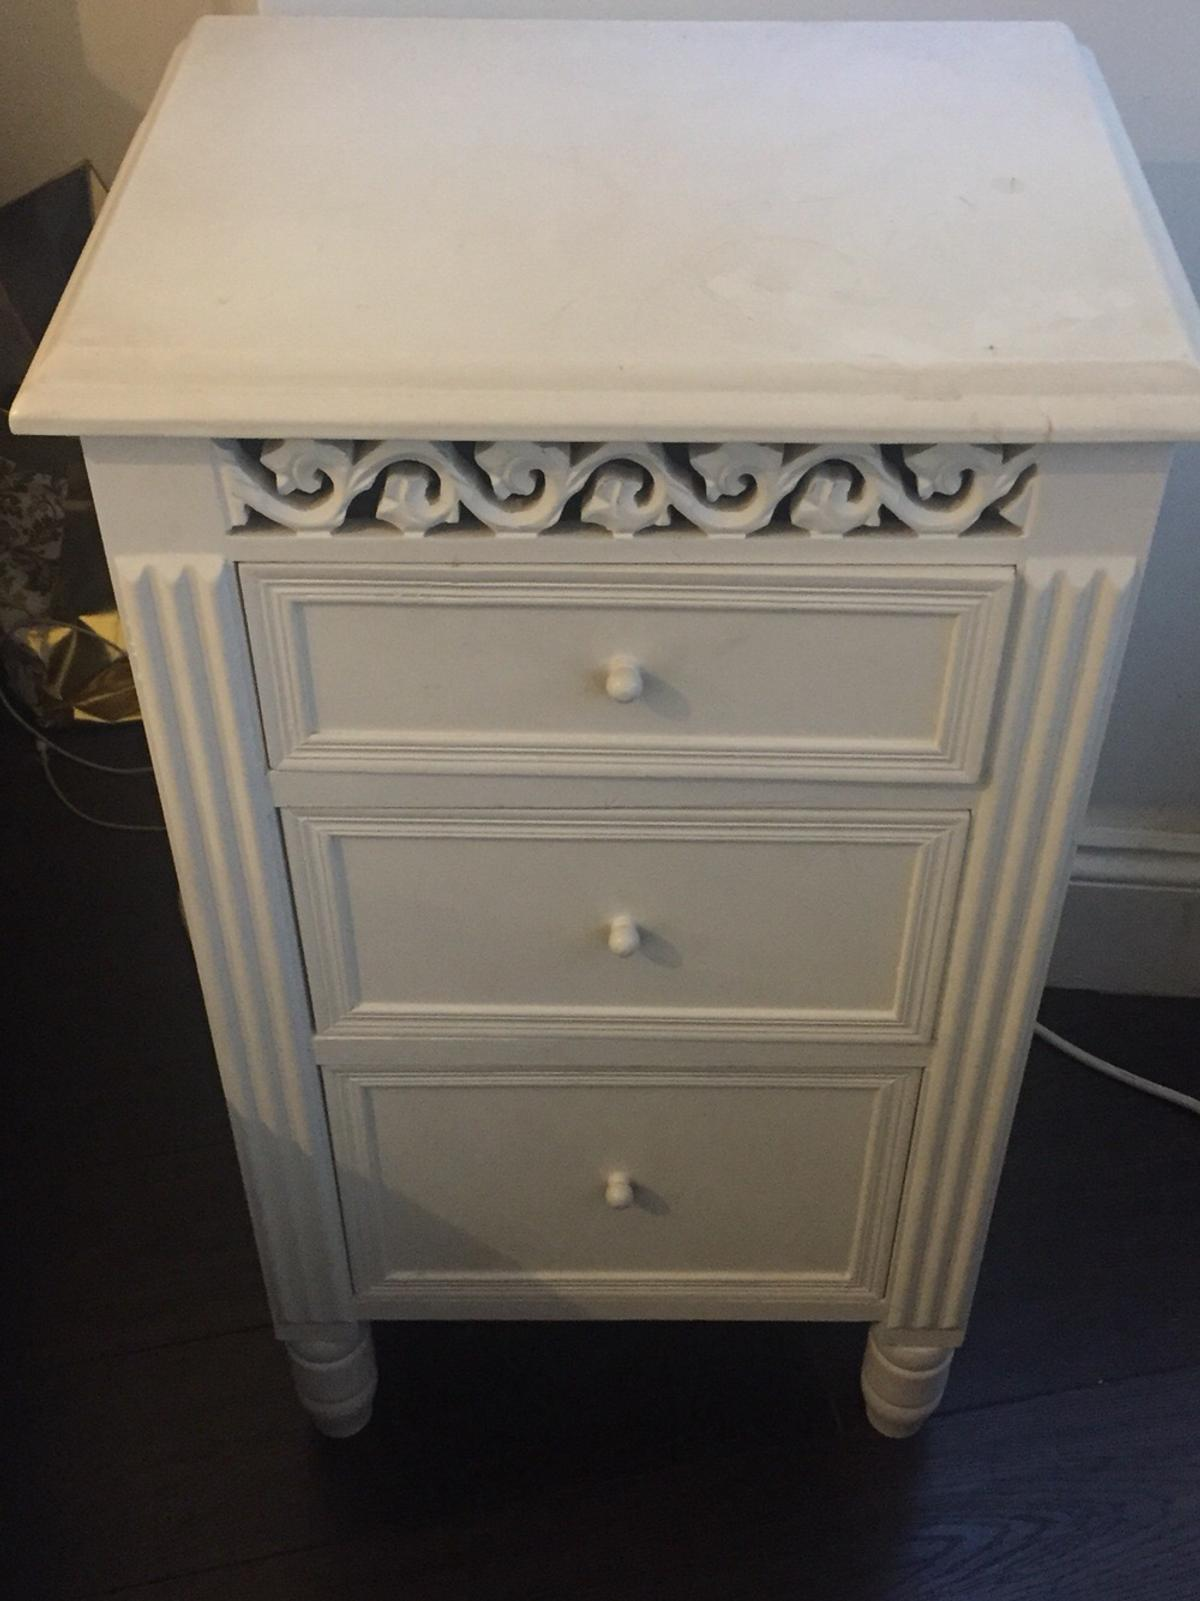 Shabby Chic Bedside Cabinet In Ha5 Pinner For 20 00 For Sale Shpock